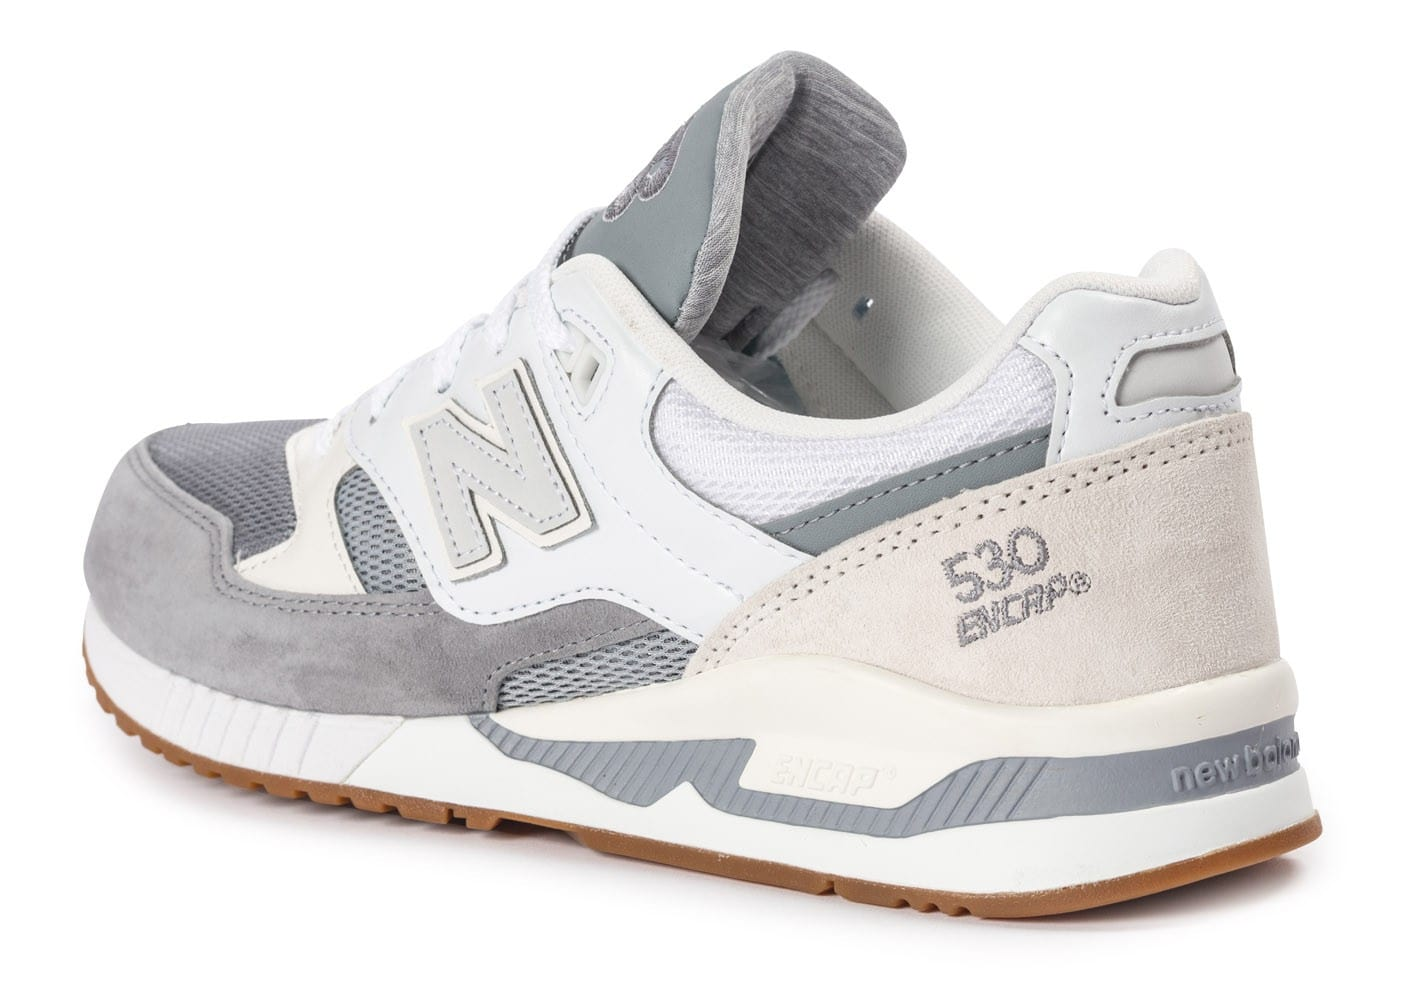 New Balance Blanche Grise